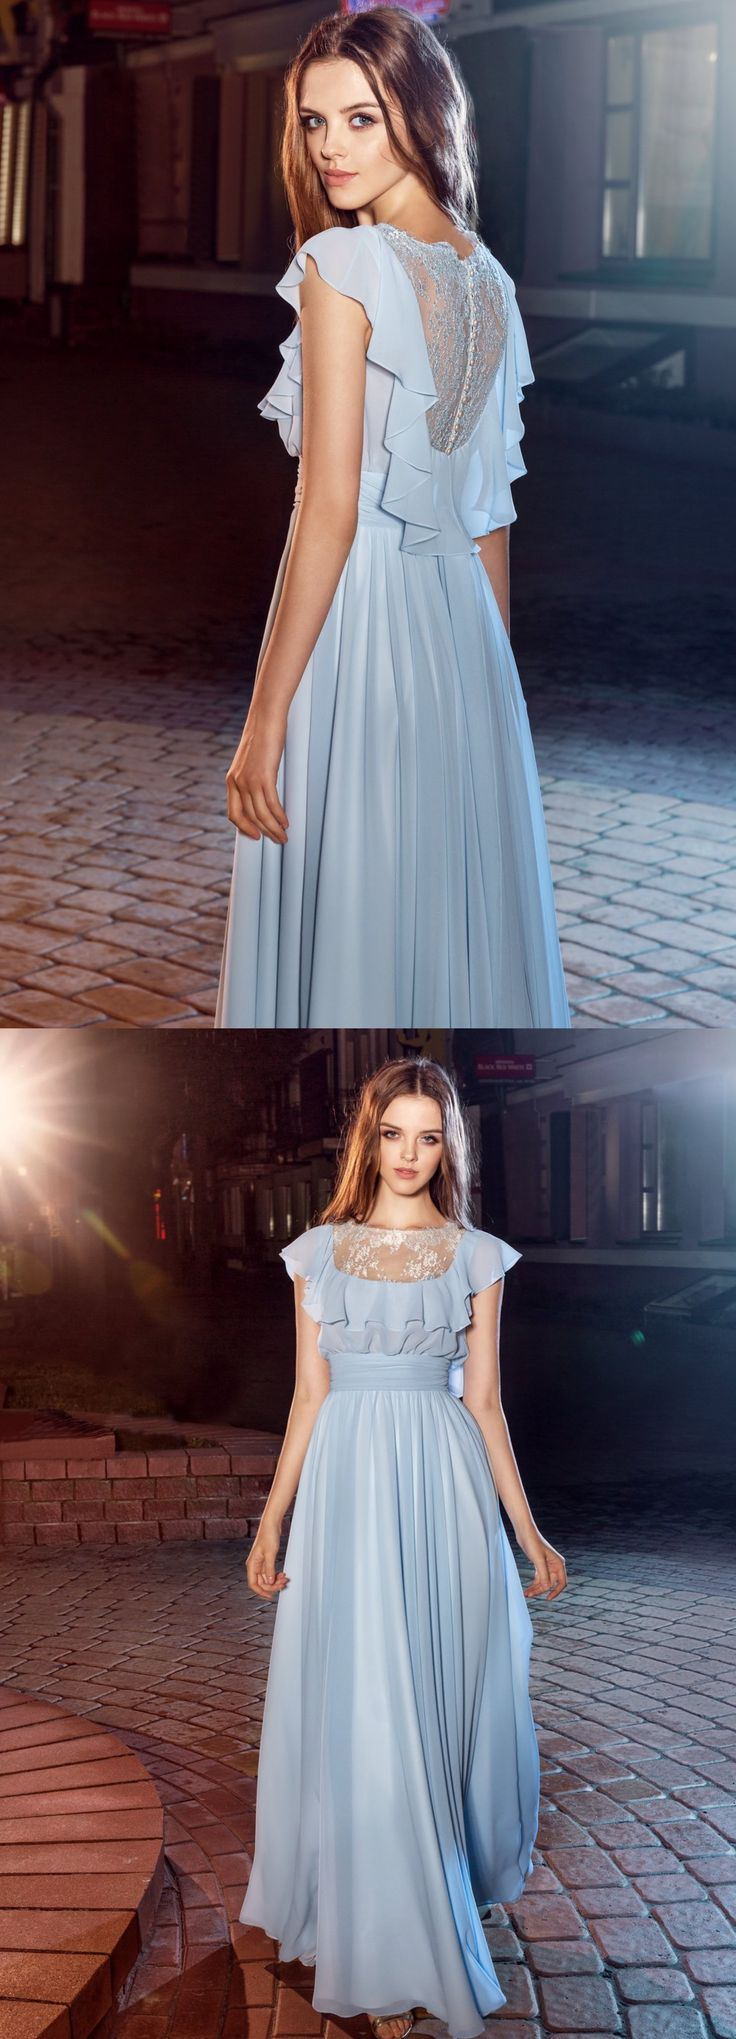 Style #203 from the Nightglow collection, ruffled top sheath dress with illusion lace neckline and back, available in sky-blue, ivory, white, blue and nude. #papilioboutique #eveningwear #fashion #blacktie #promdress #graduation